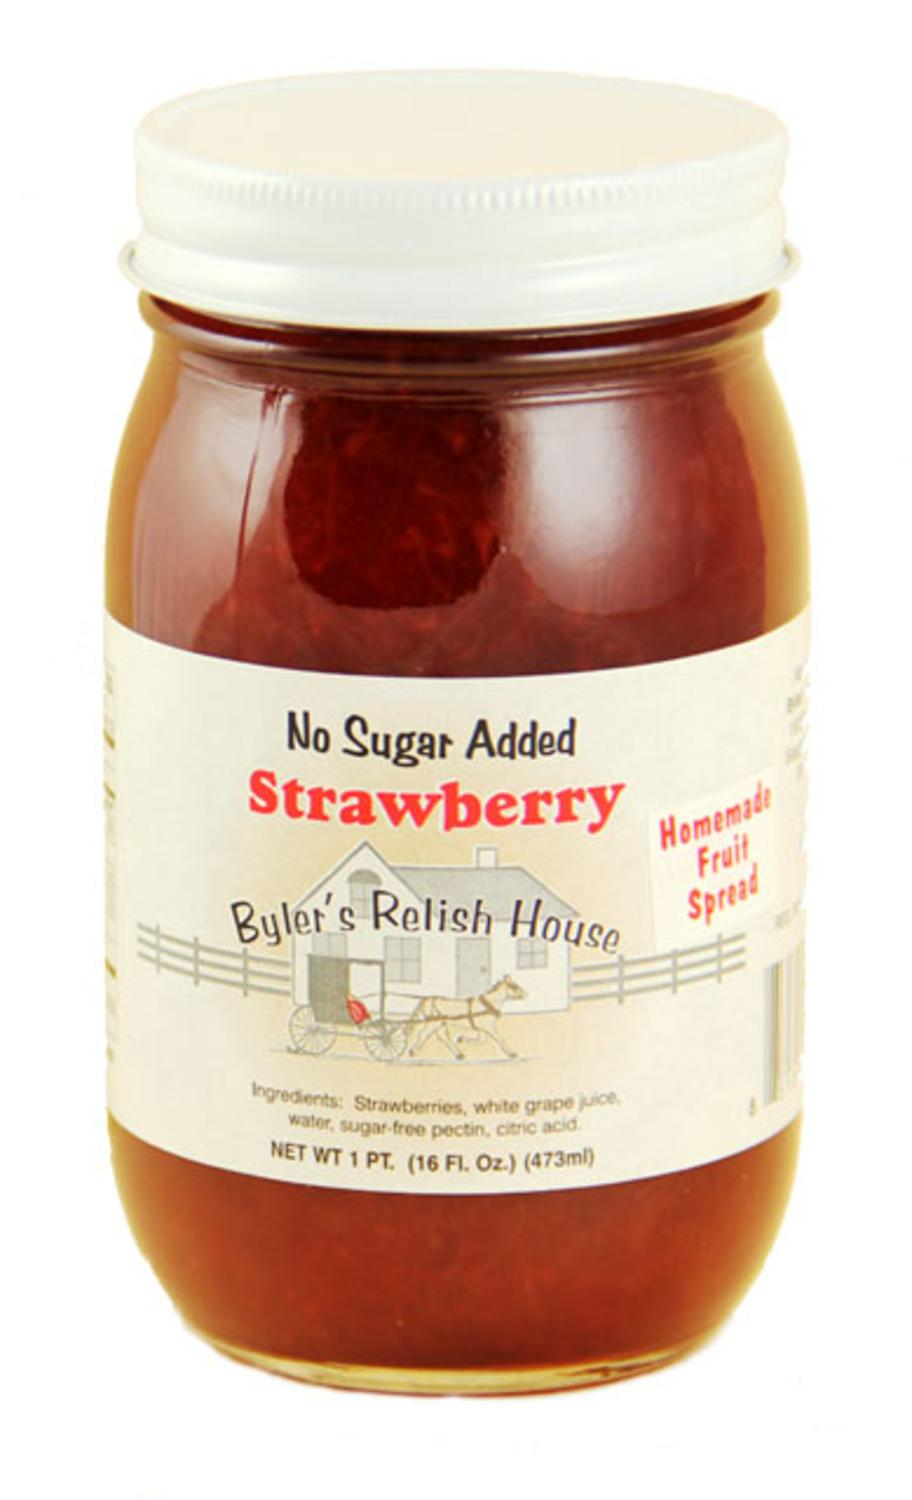 Byler's Relish House Homemade No Sugar Added Strawberry Jam Fruit Spread 16 oz. by Byler's Relish House